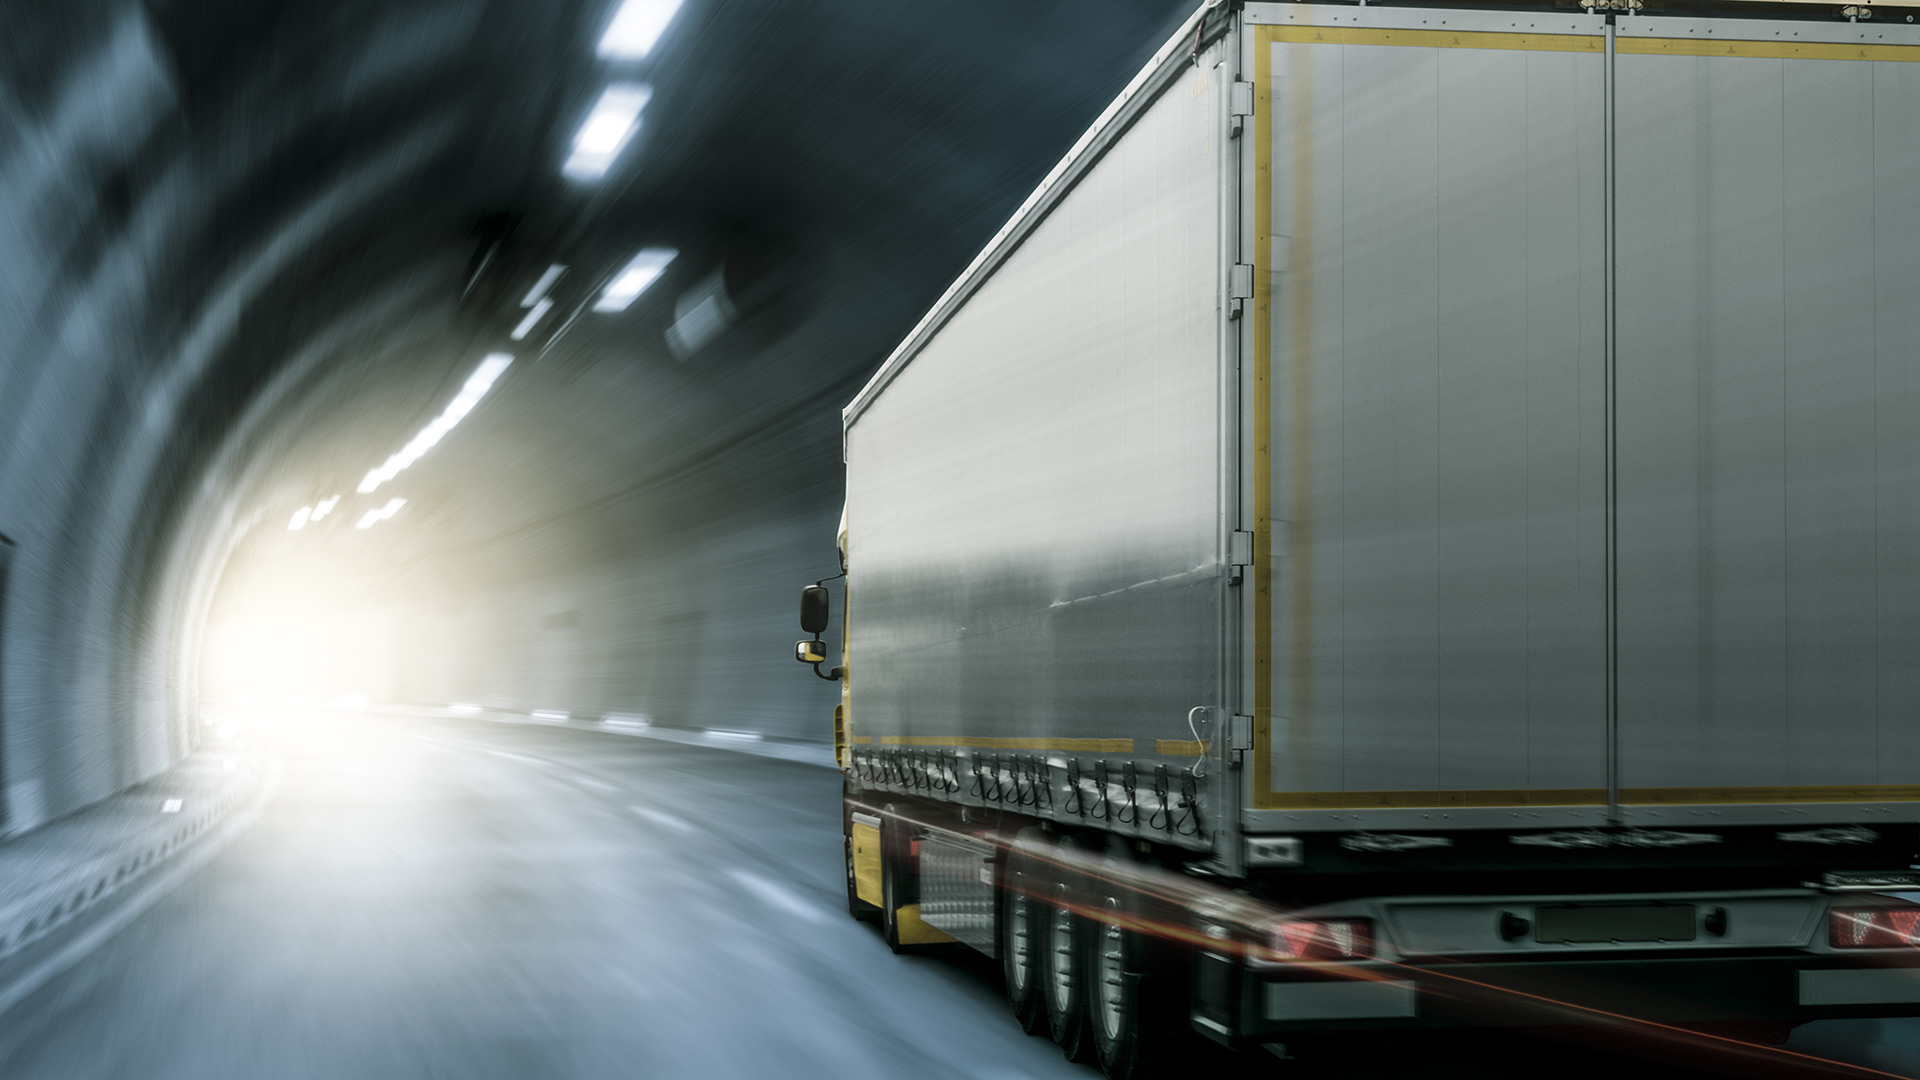 Technical advice on Trans-European motorway tunnels safety conditions